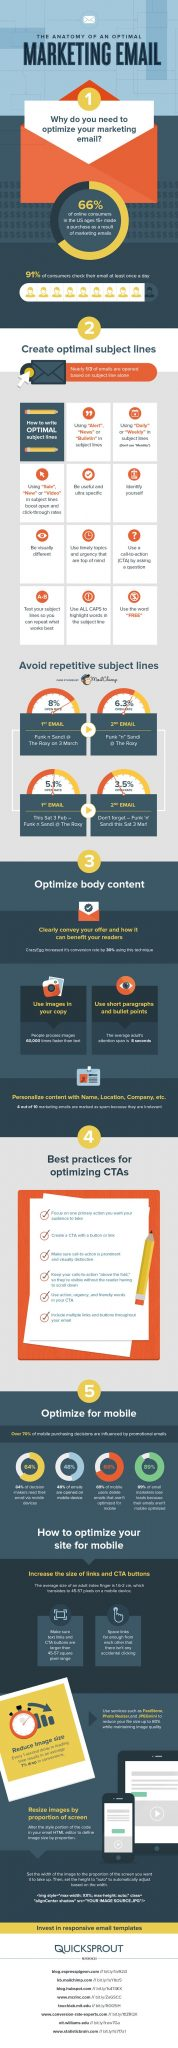 optimal-marketing-email-infographic